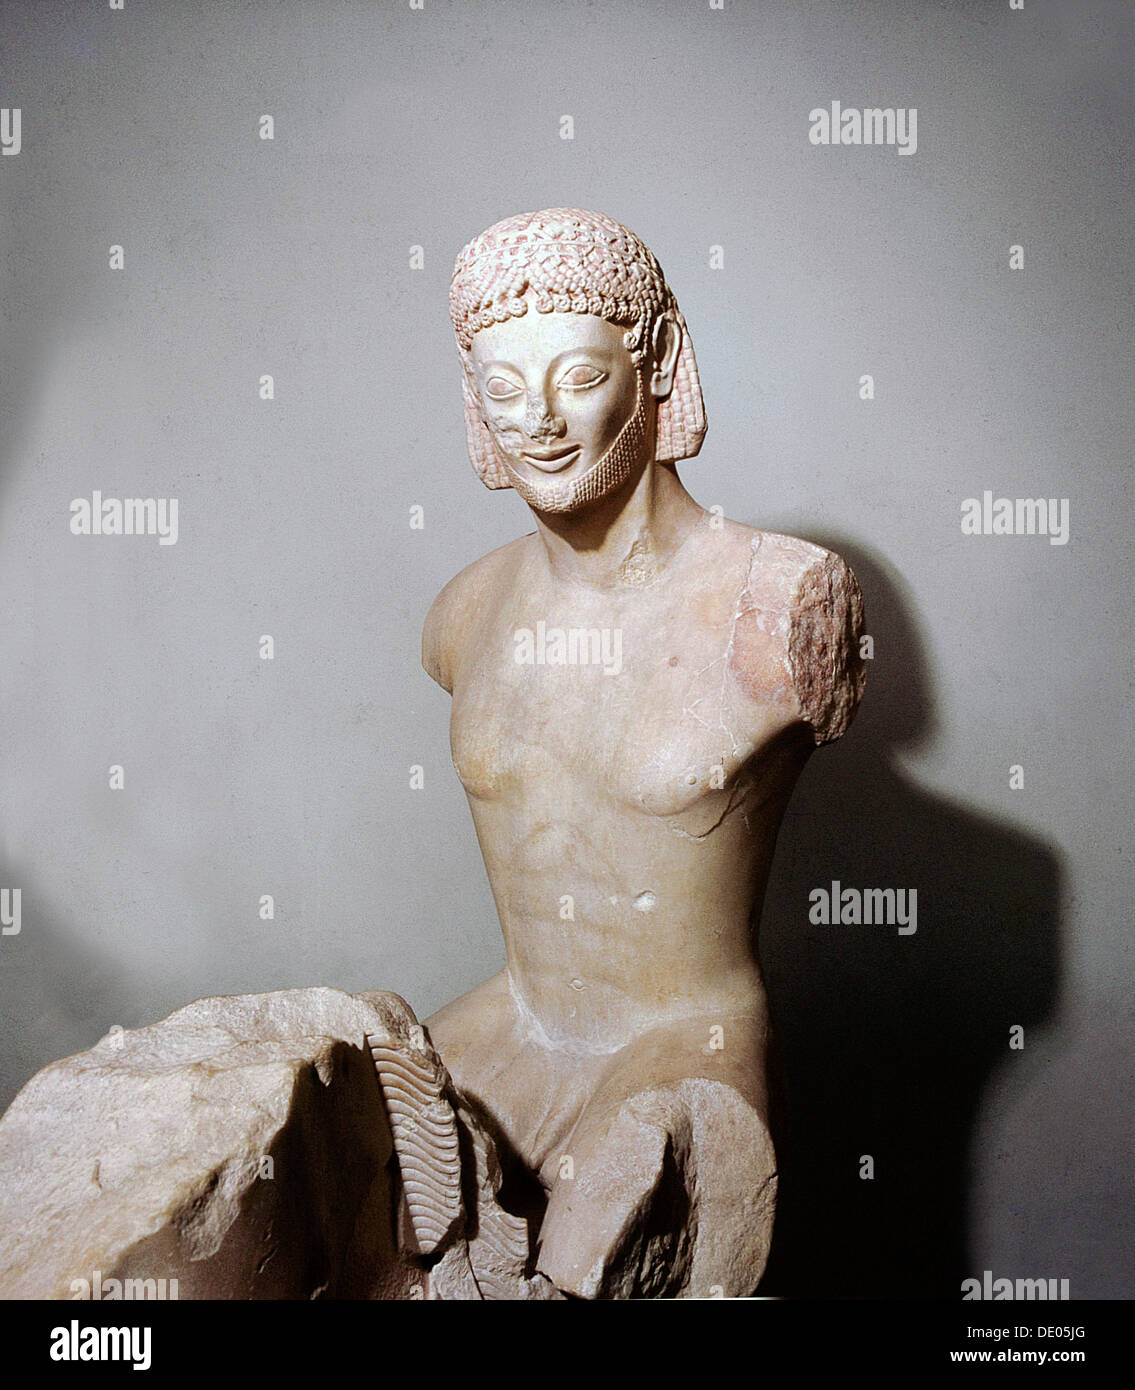 Marble figure of a horseman, Ancient Greek, Archaic period, c560 BC. Artist: Werner Forman - Stock Image